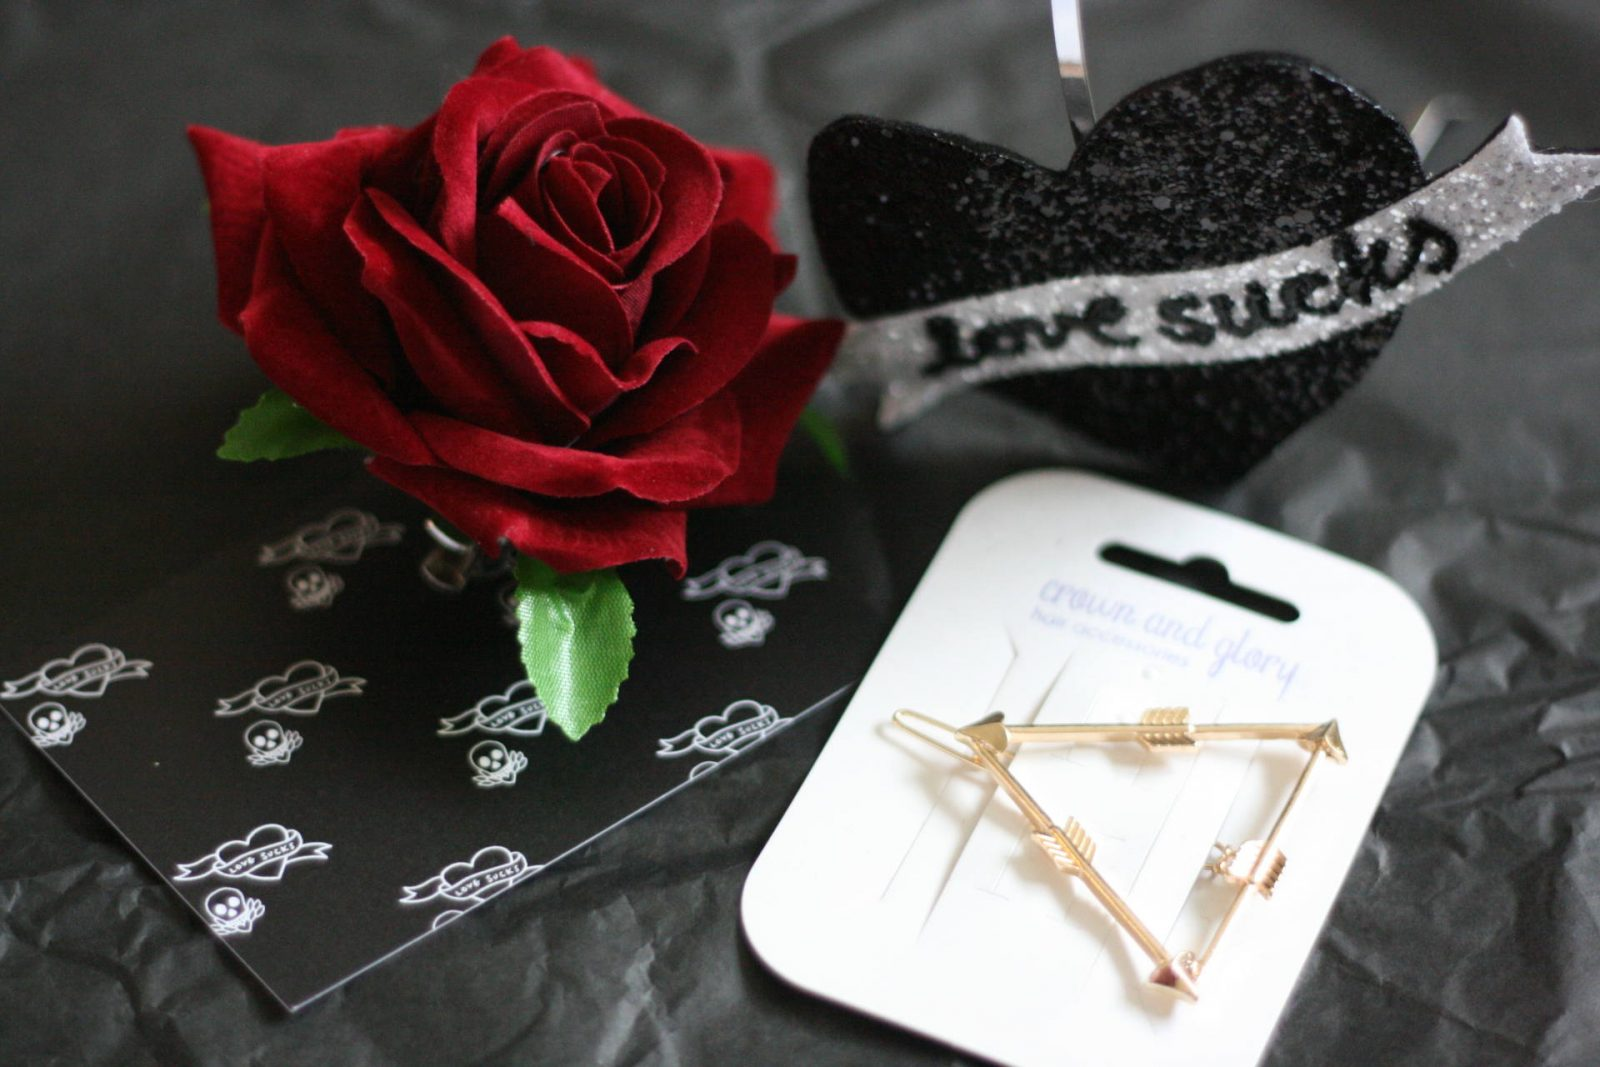 unboxing the crown and glory glitterati, february 2016;